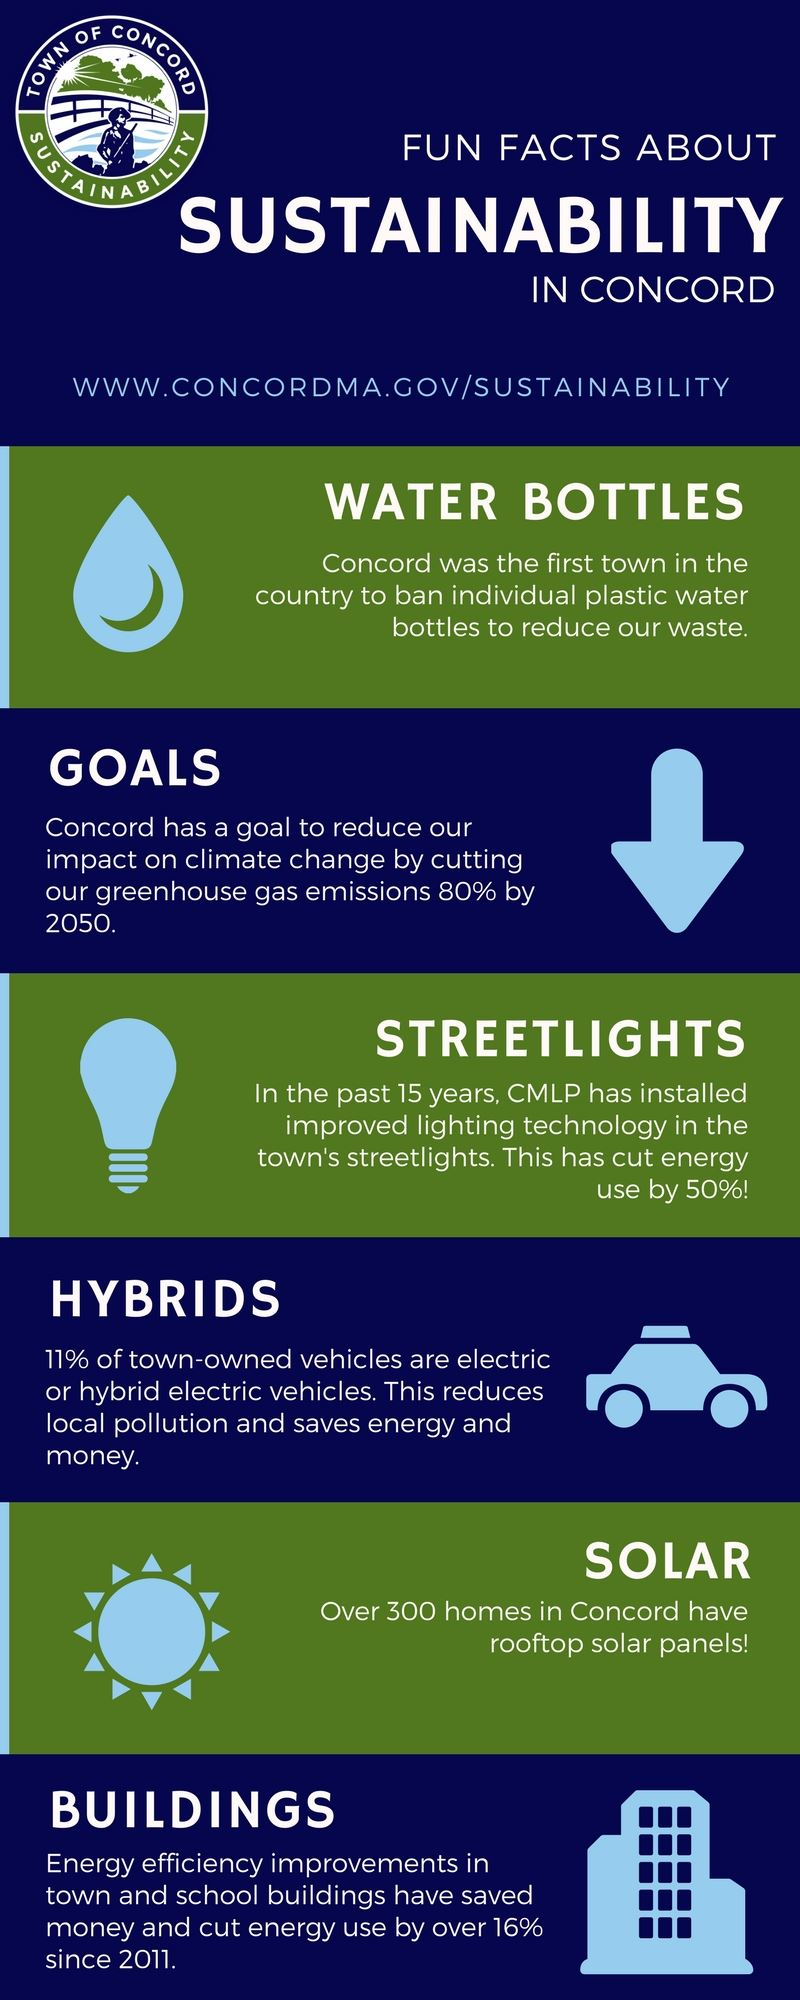 Fun Facts about Sustainability in Concord